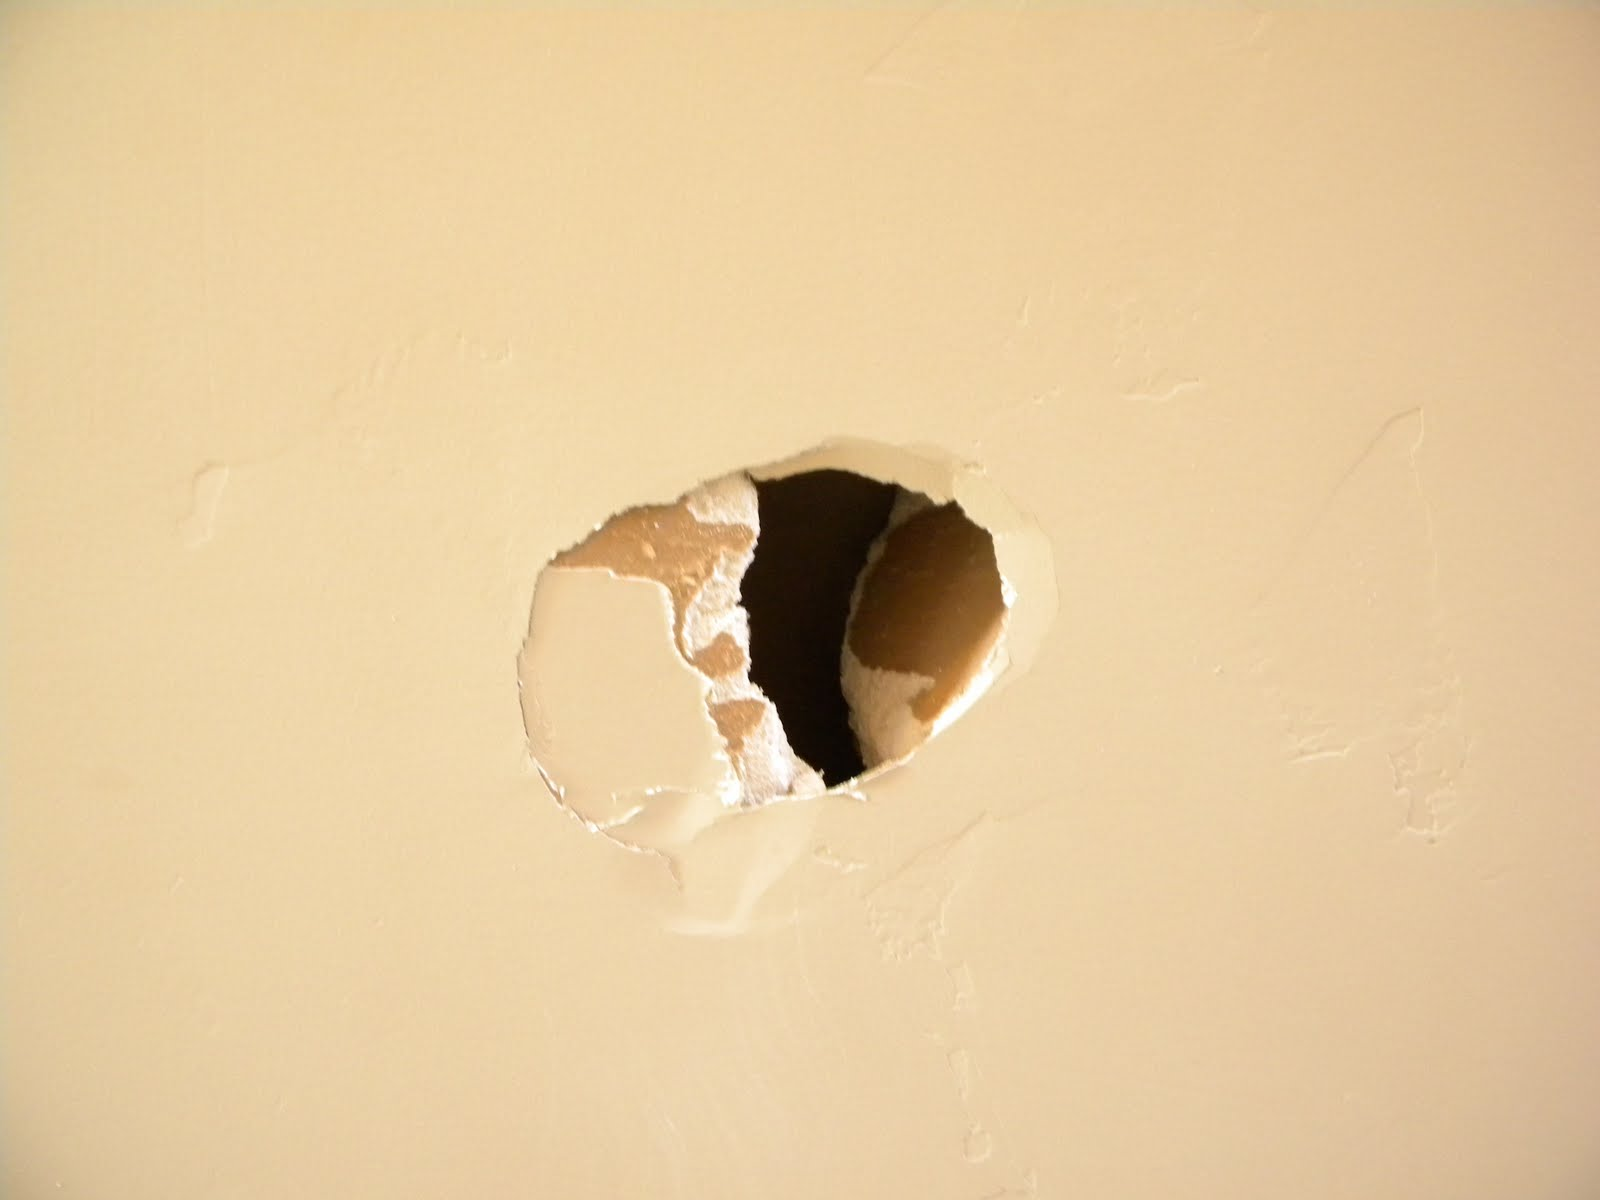 how to fix a punched hole in drywall